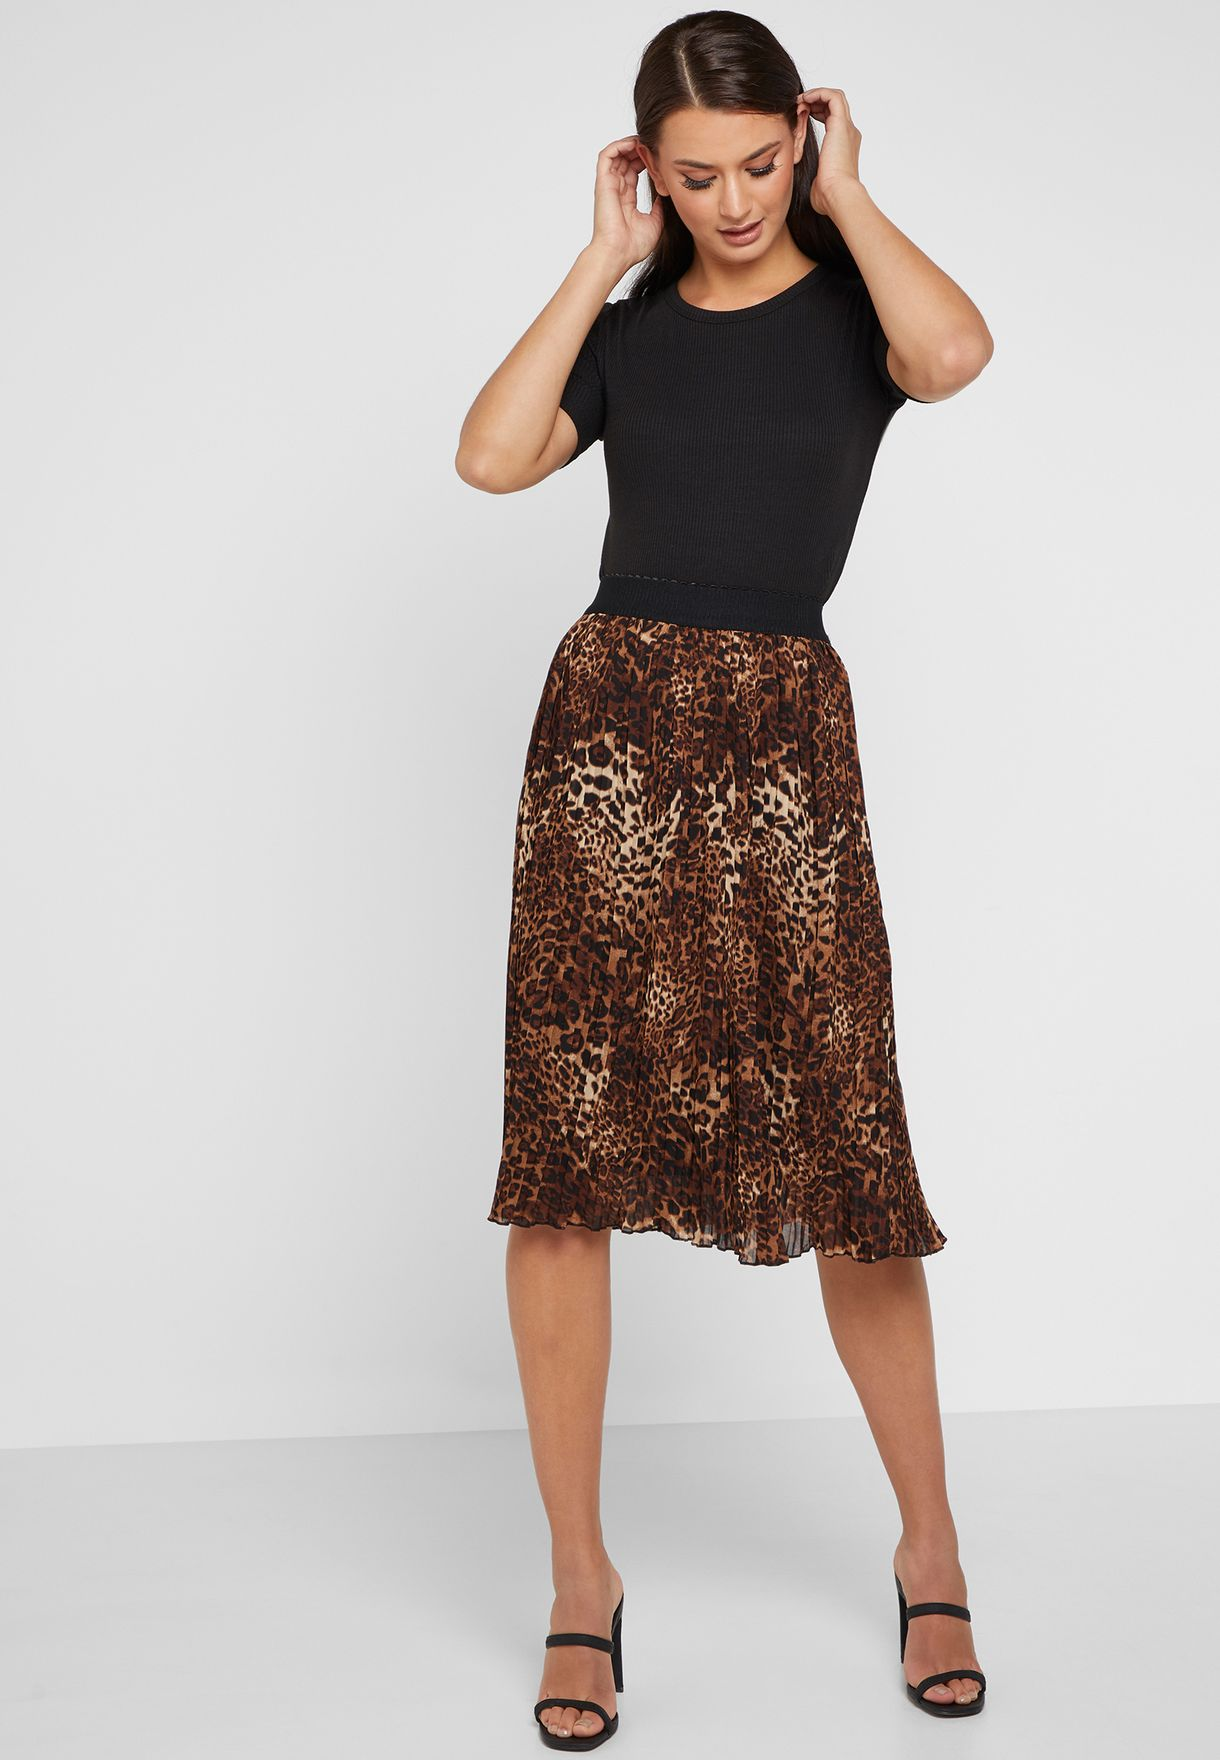 97f99ac4b7f9 Shop Ella prints Leopard Print Pleated Midi Skirt 35455 for Women in ...